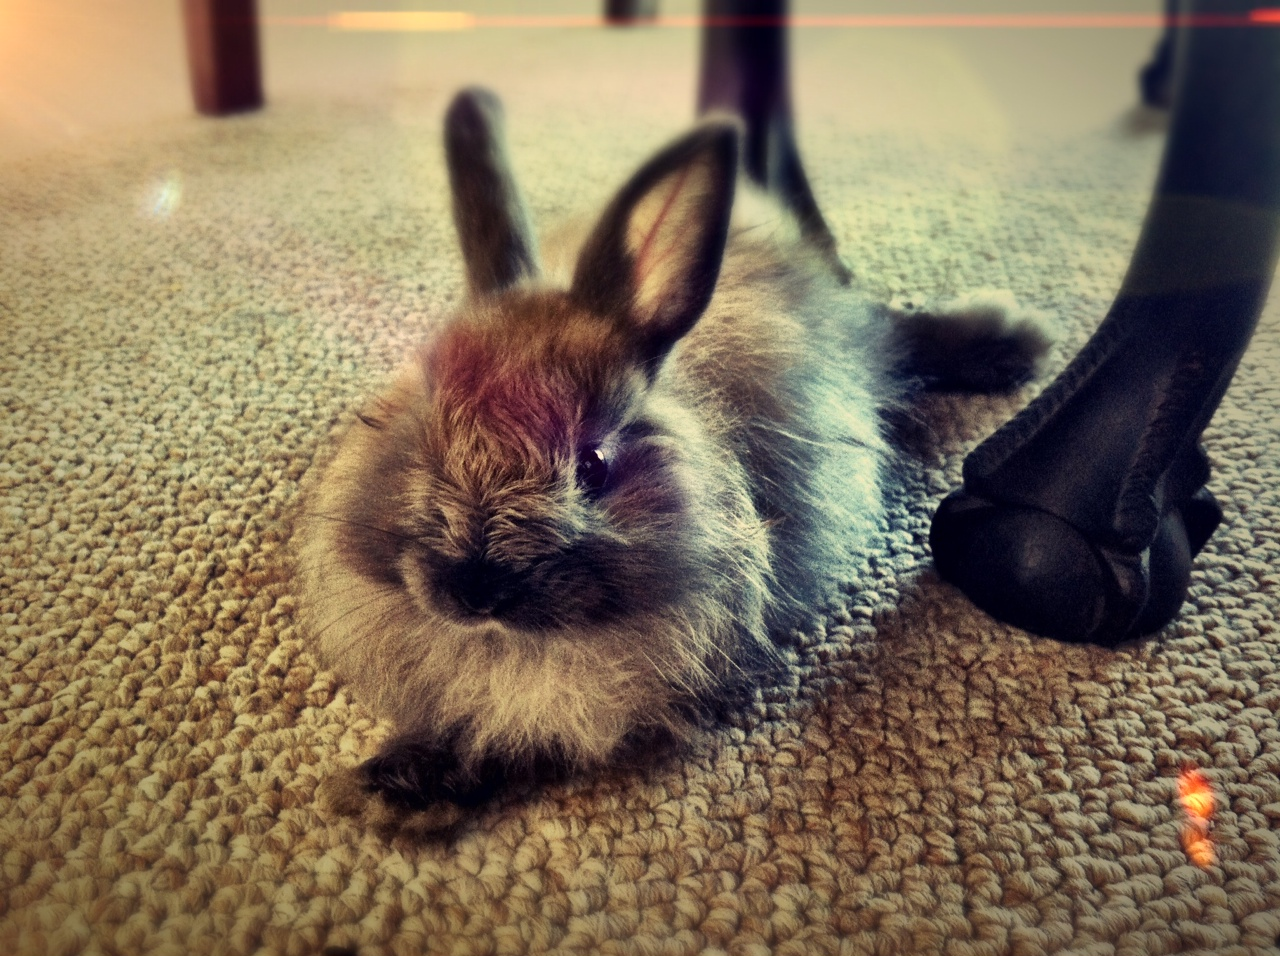 Fuzzy Bunny Relaxes on the Fuzzy Rug